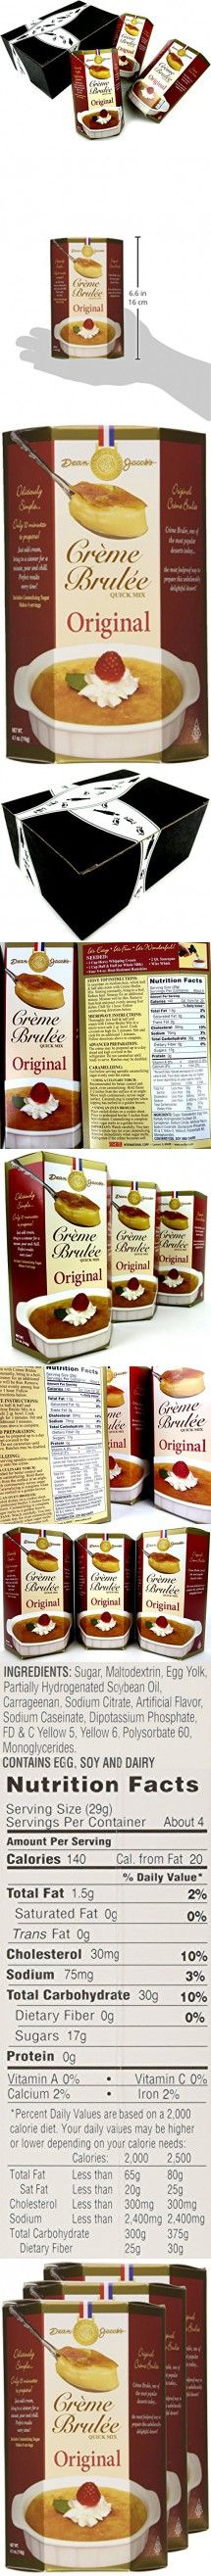 Dean Jacob's Crème Brulée Quick Mix, 4.1 oz Boxes in a BlackTie Box (Pack of 3)